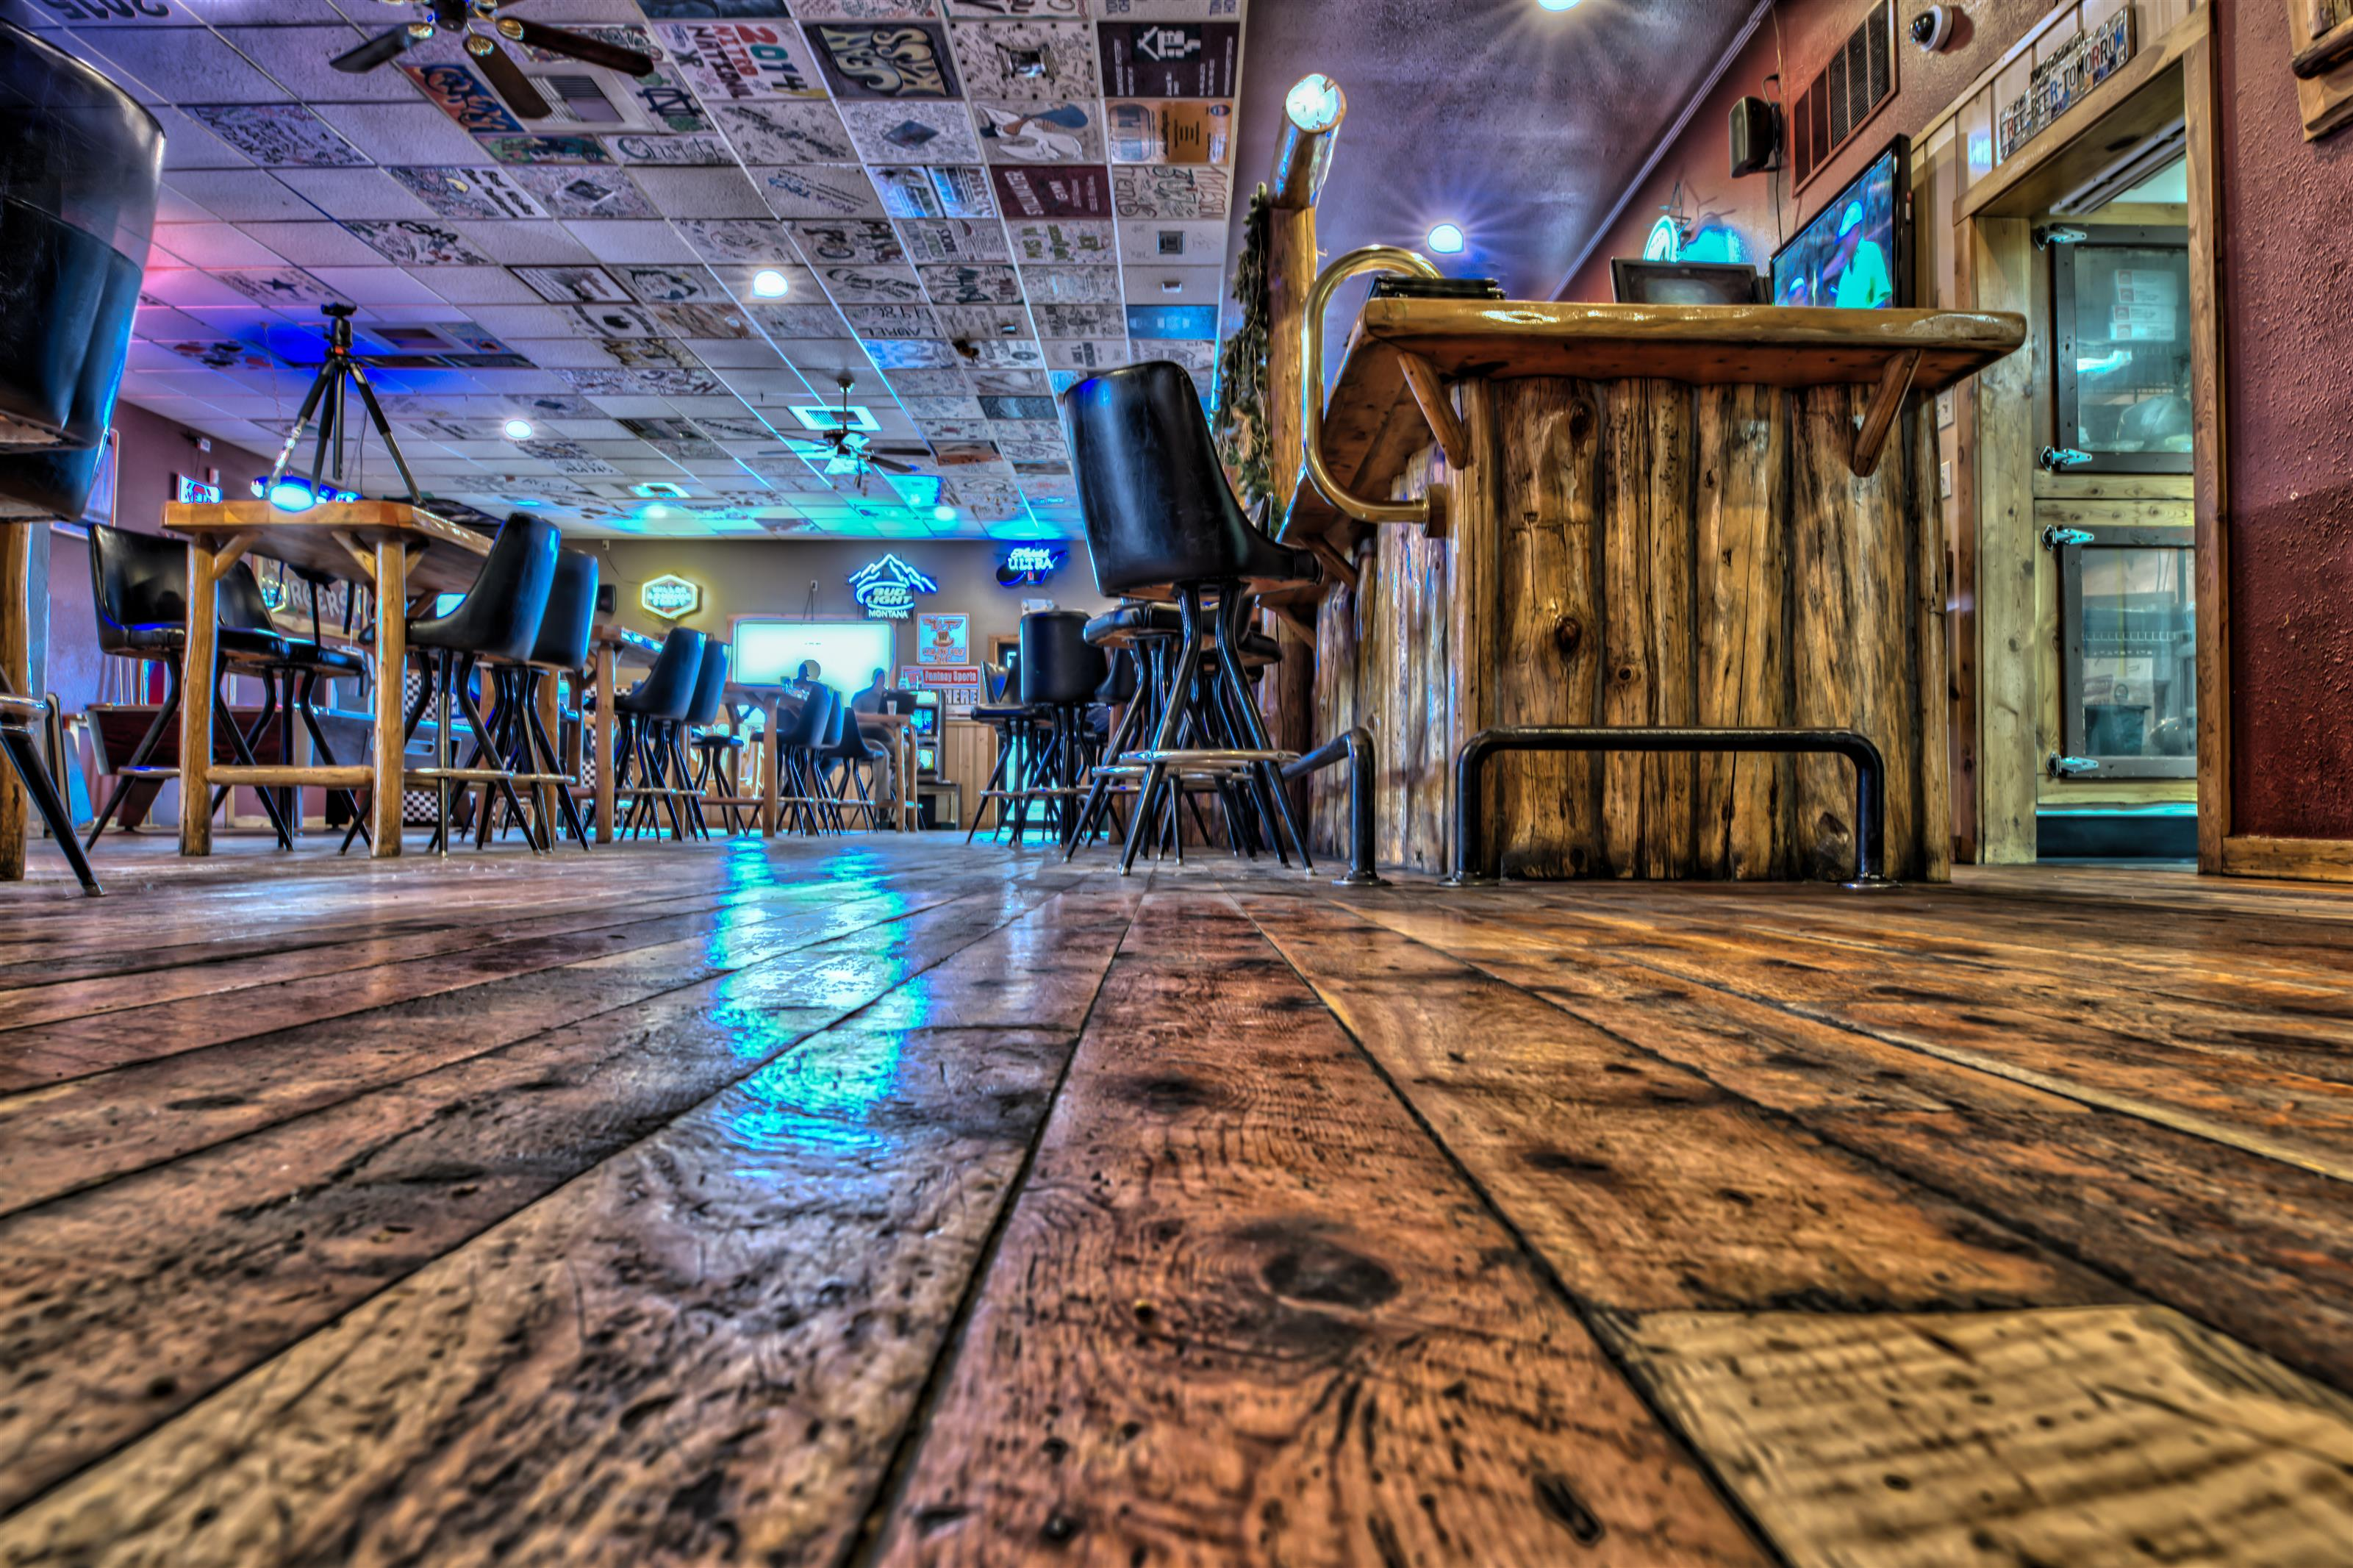 view from floor of inside of restaurant with wooden bar and bar stools